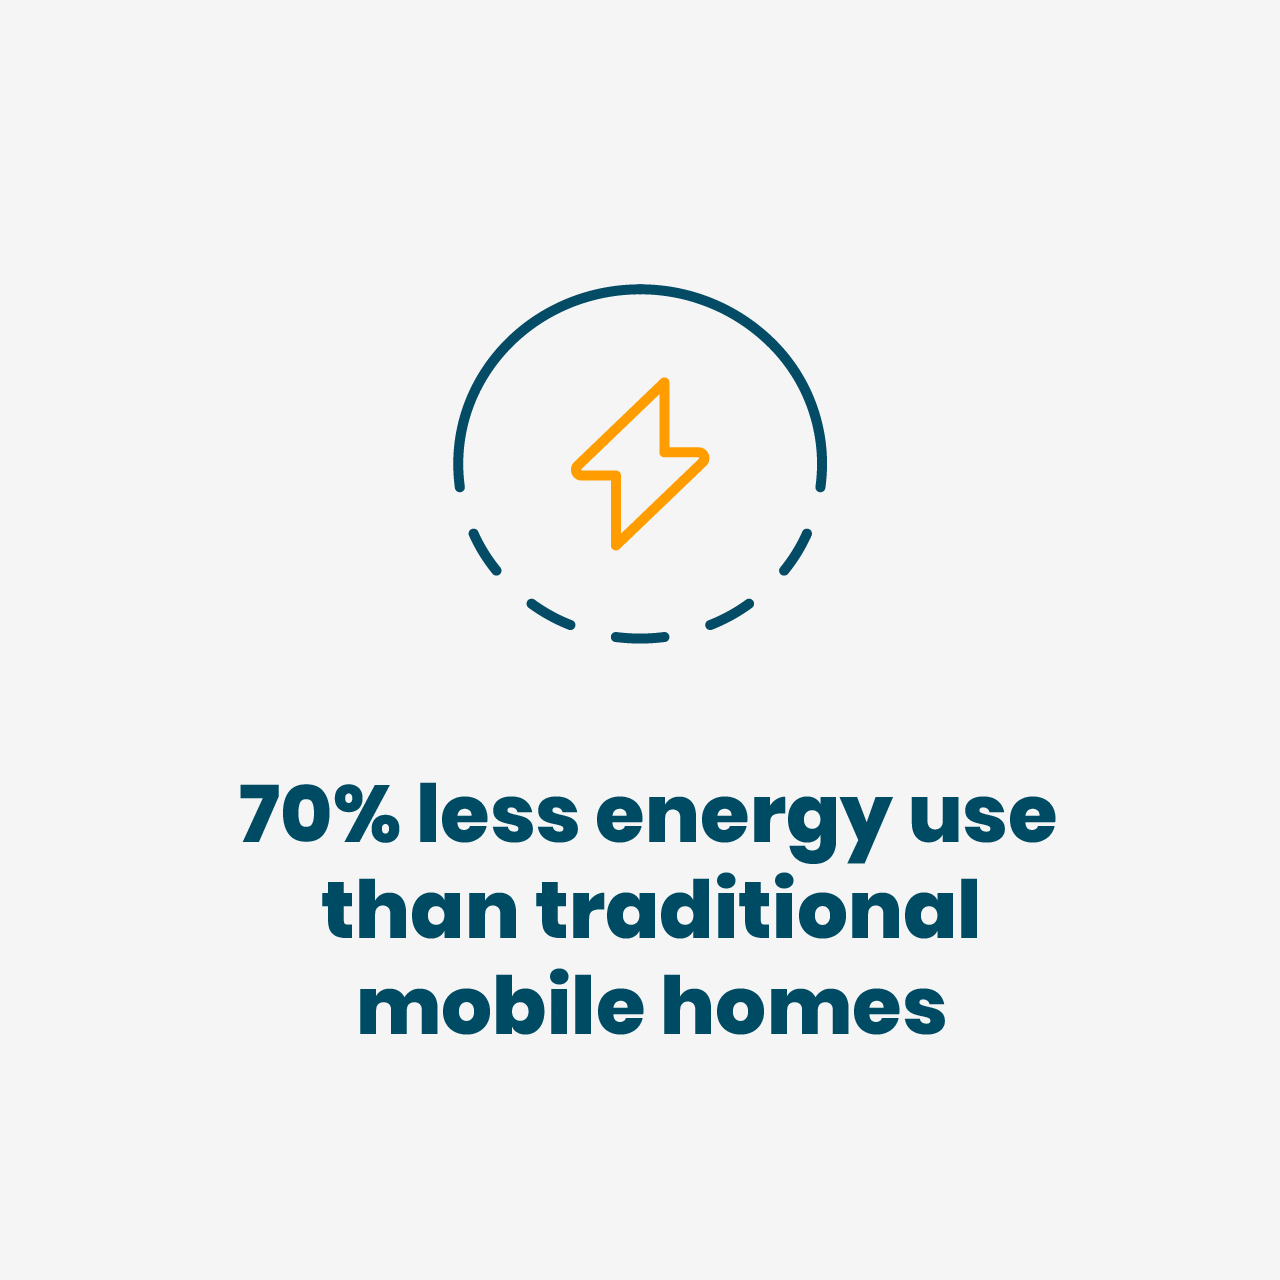 70% less energy use than traditional mobile homes